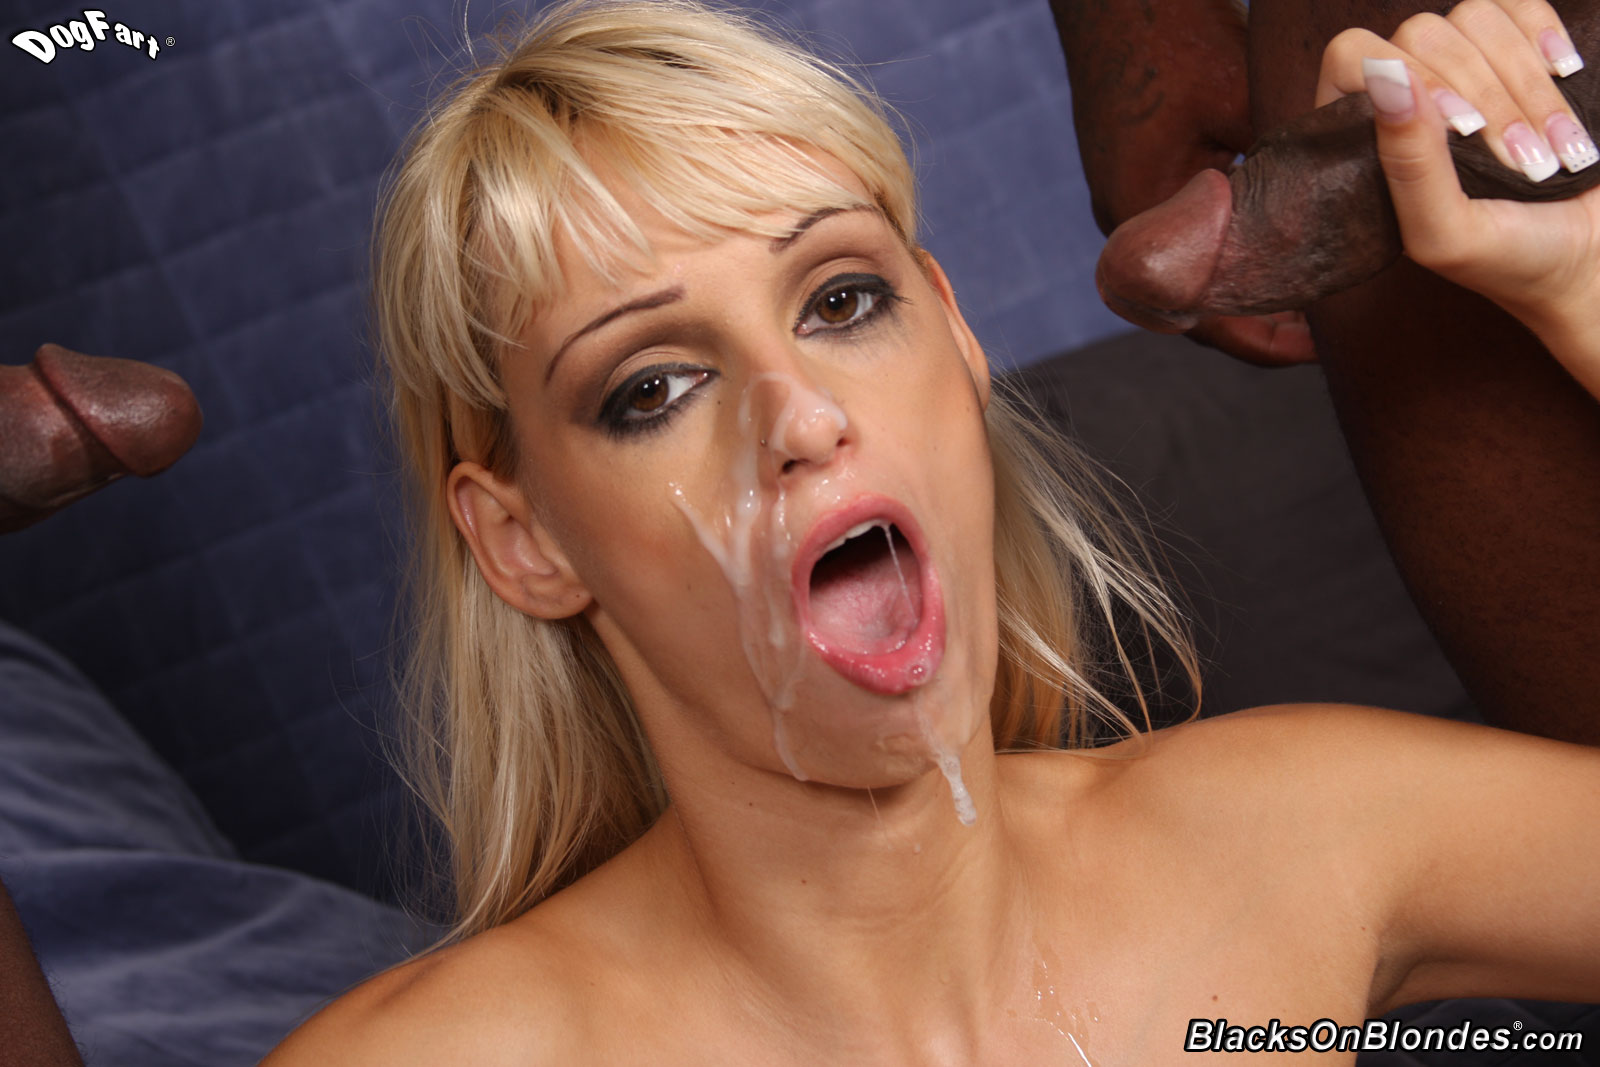 galleries blacksonblondes content erica fontes pic 29